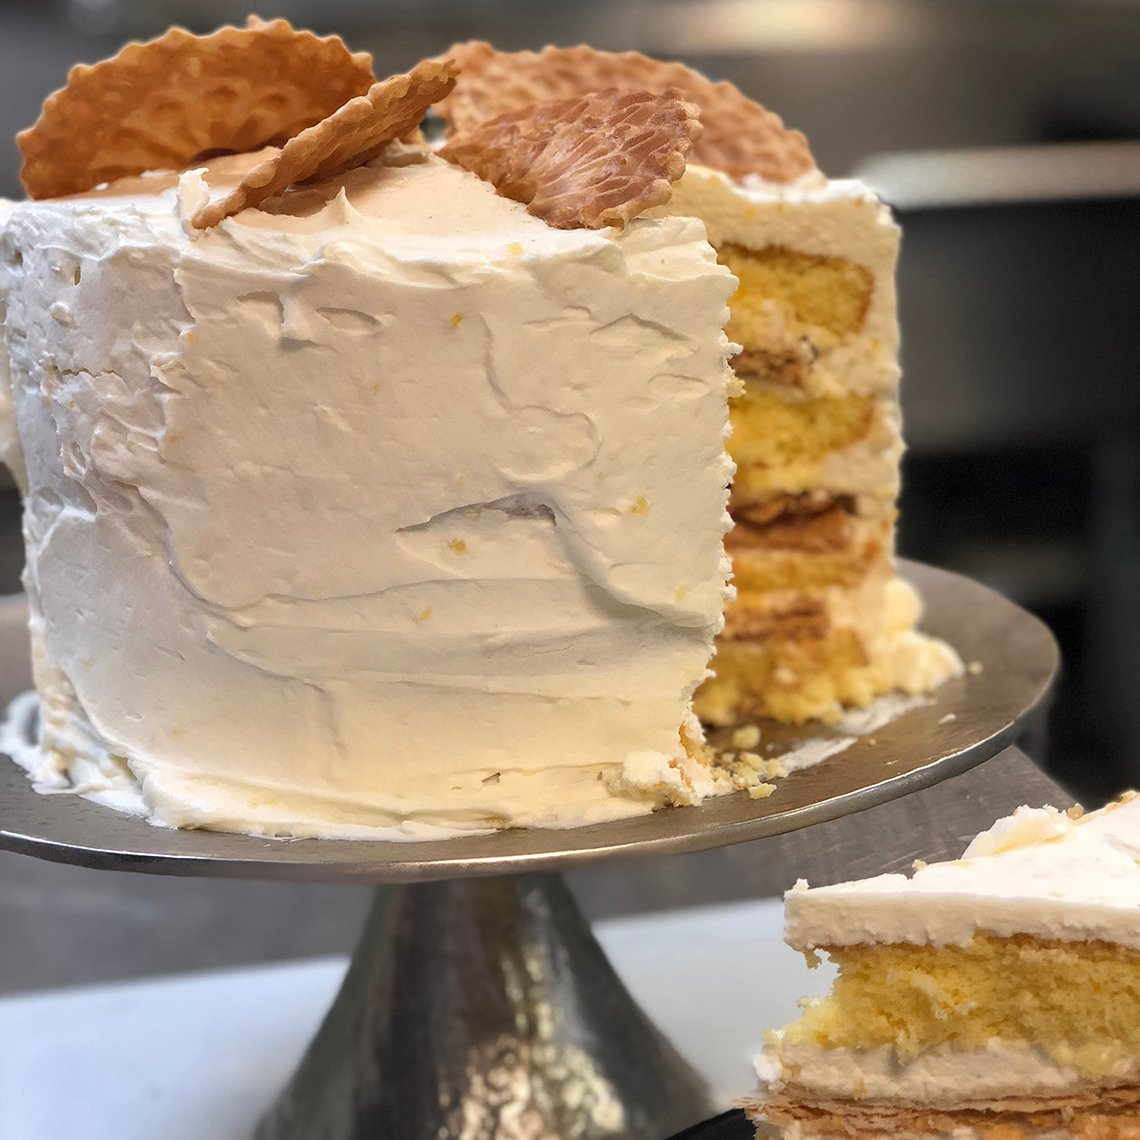 a yellow cake with white frosting on a serving platter